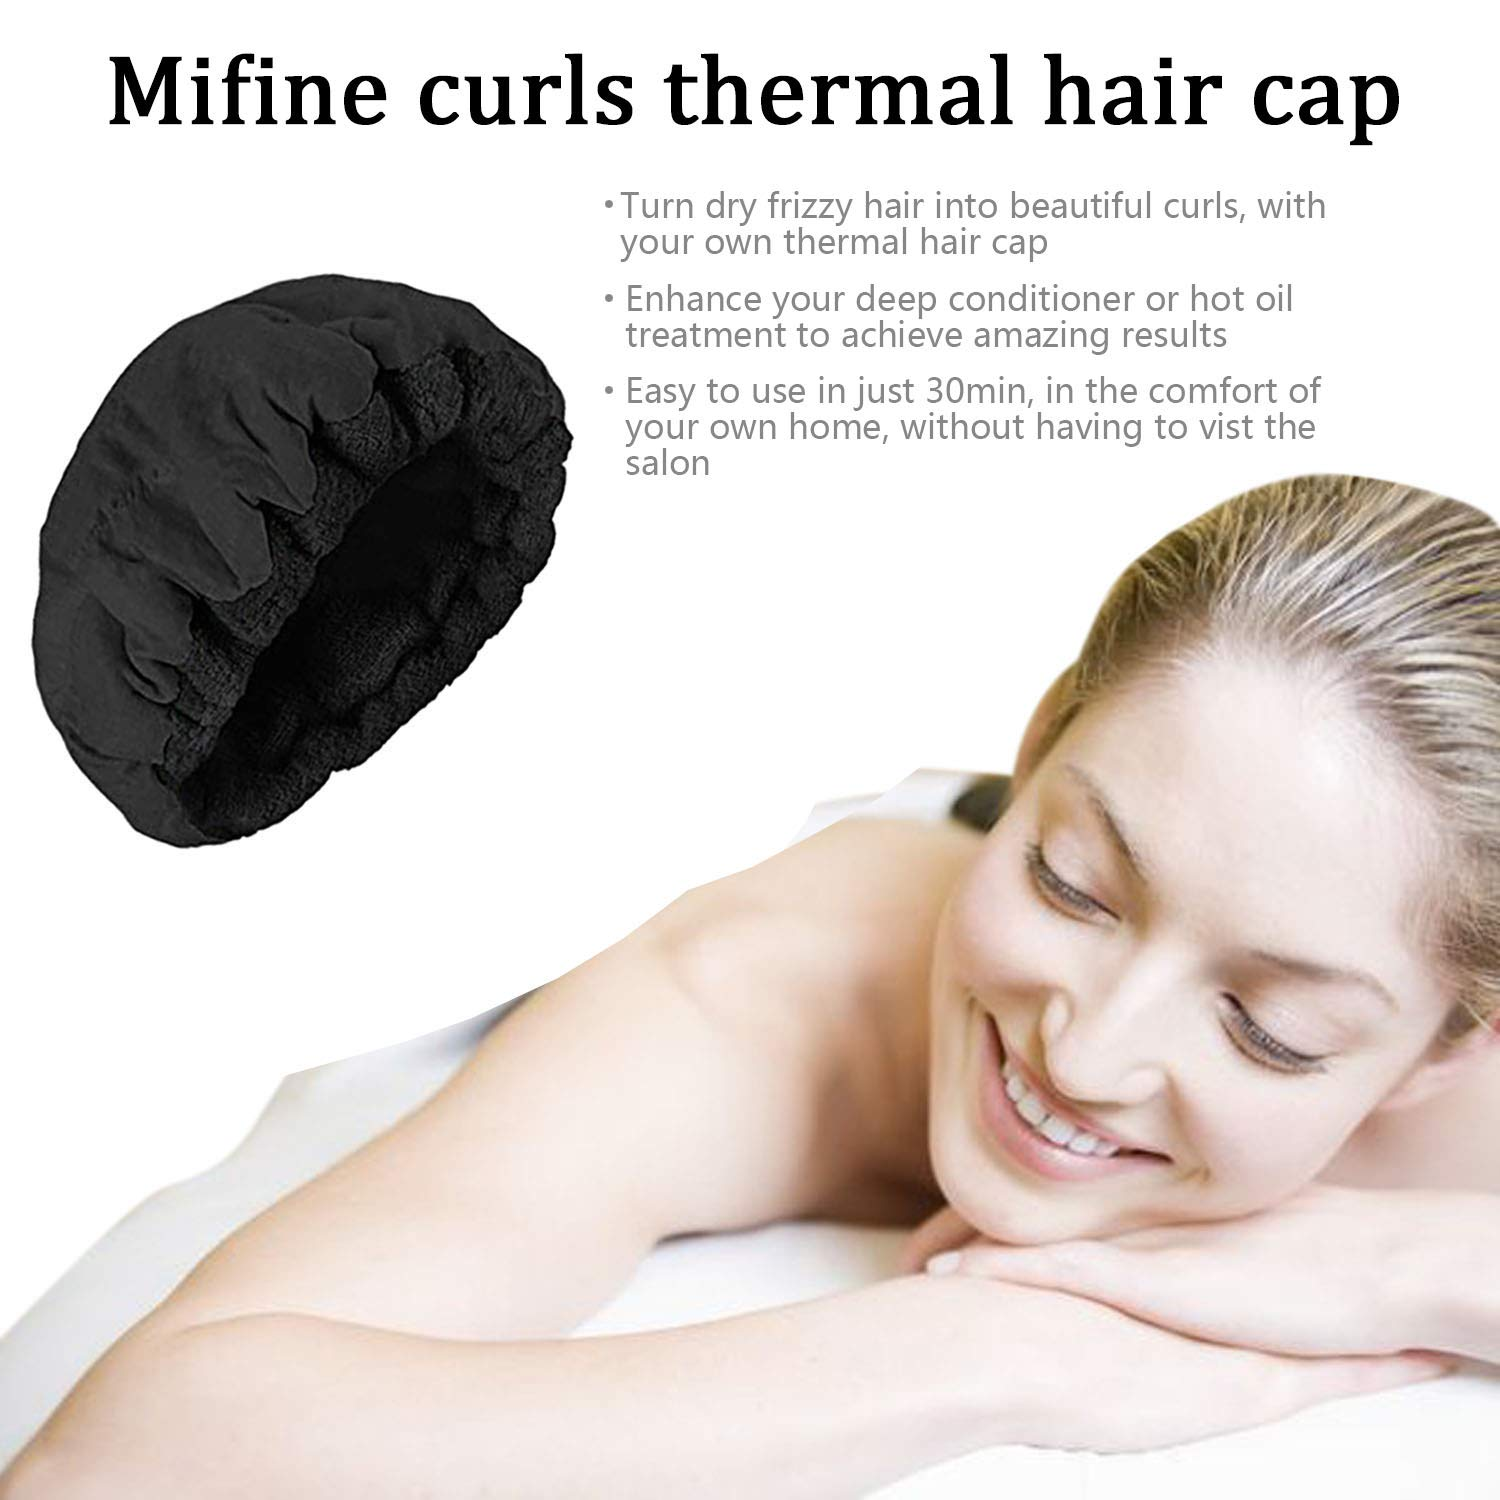 Deep Conditioning Thermal Heat Cap - Disposable Shower Caps, Curly Girl Method, Steaming Haircare Therapy, Oil Treatments, Hair Mask Therapy, Soft, Plush Cotton, Stretchy Nylon, Safe Microwave Cap by Mifine (Image #4)